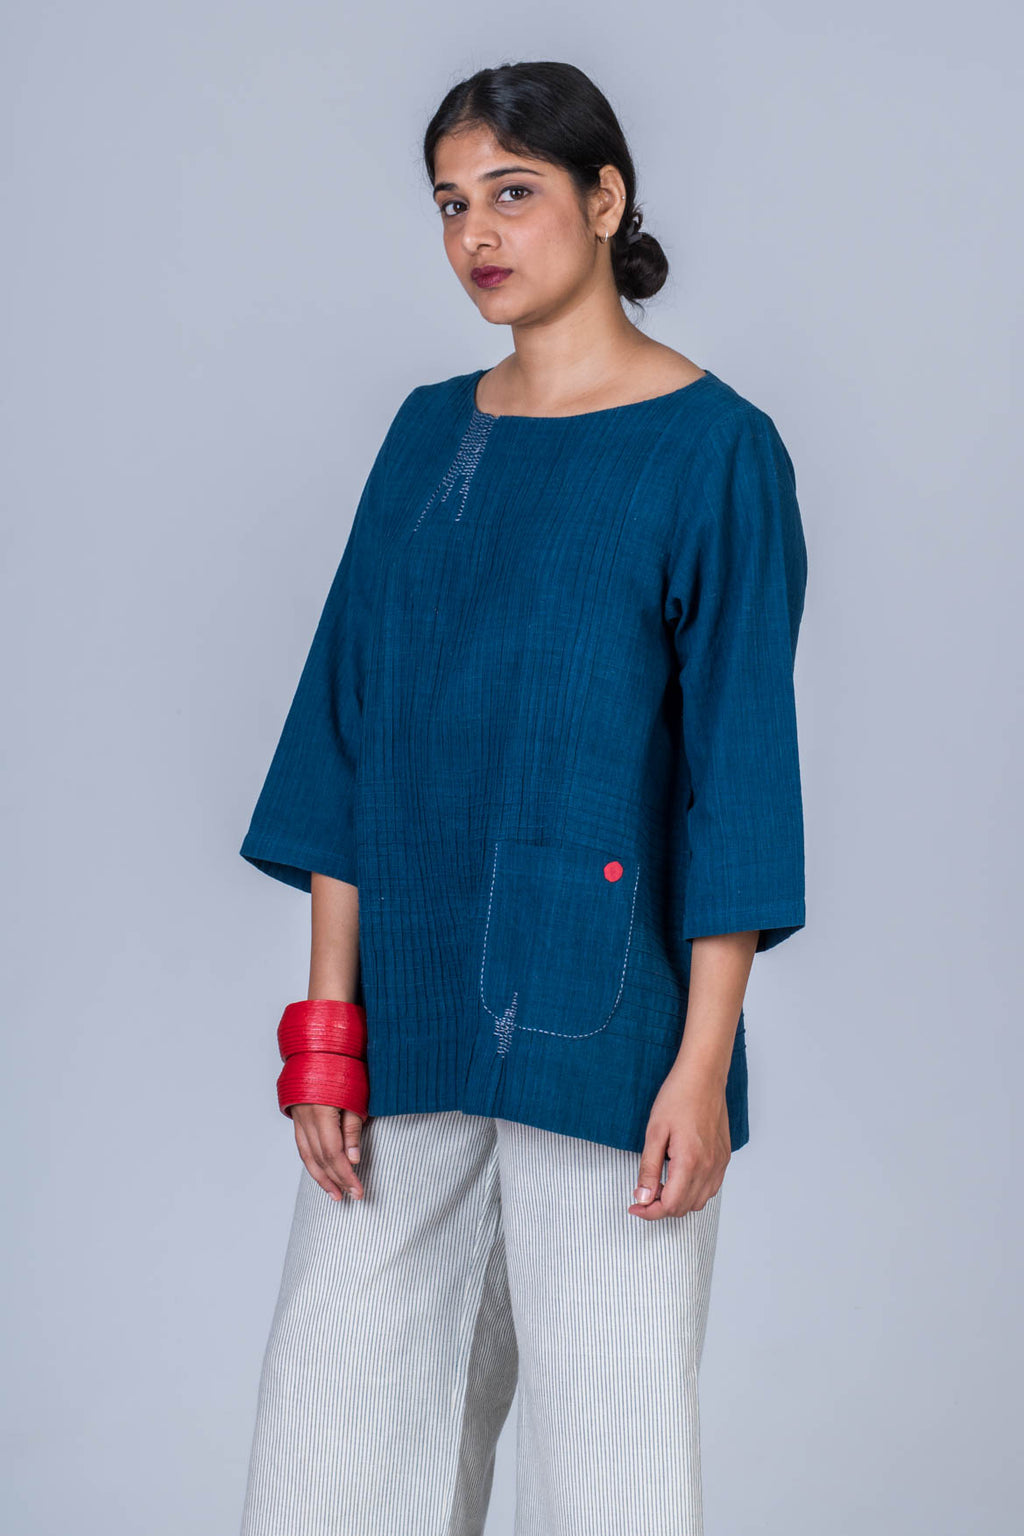 Natural Indigo Cotton Long Top - PARI - Upasana Design Studio